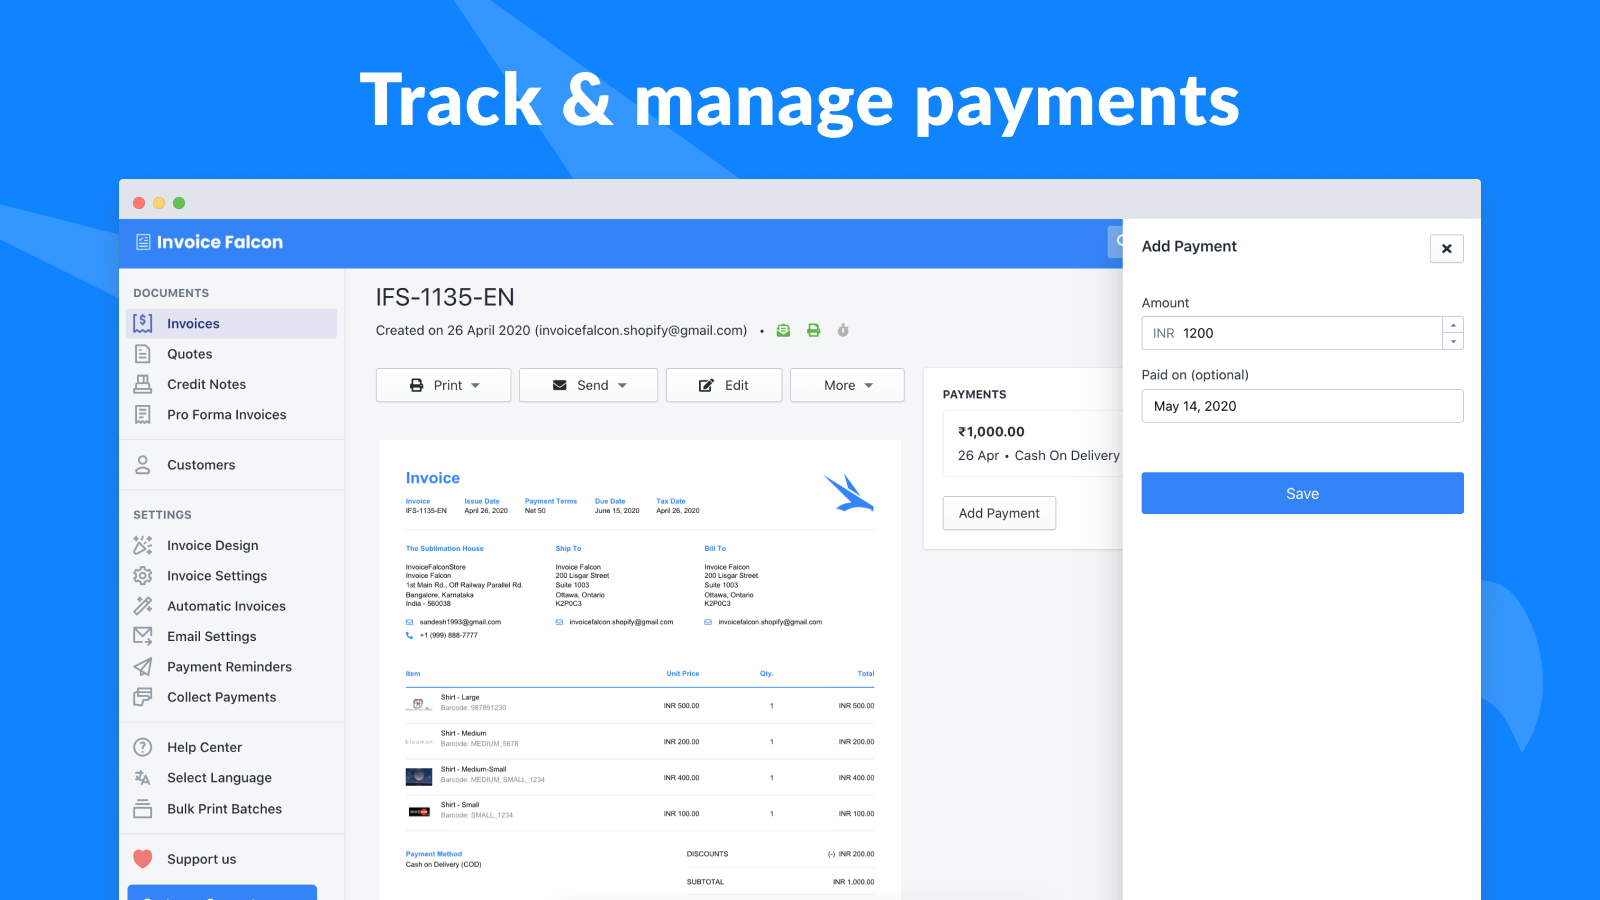 Track & manage payments for invoices